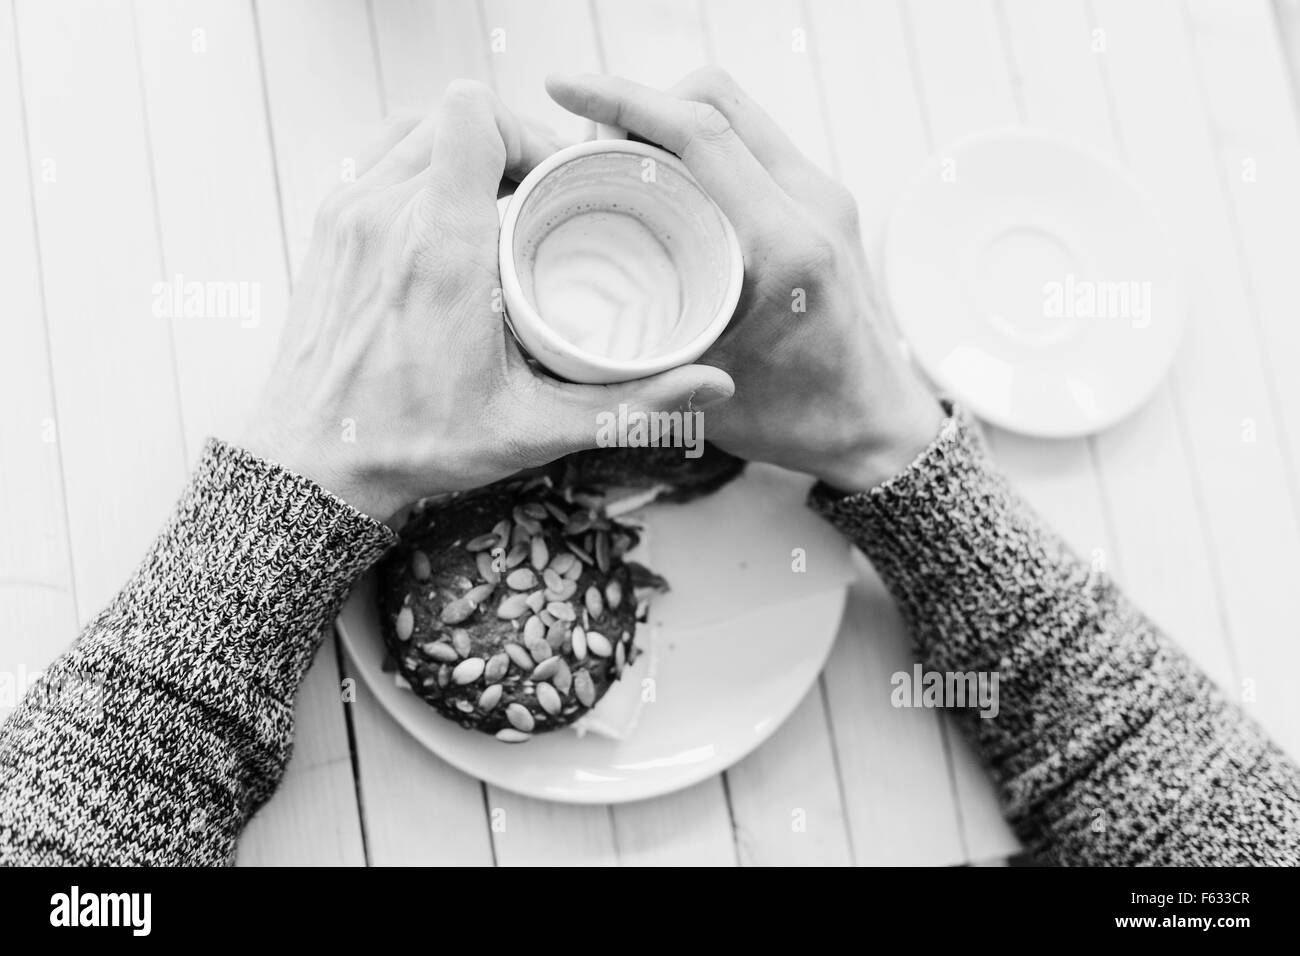 High angle view of man's hands holding coffee cup at cafe table - Stock Image